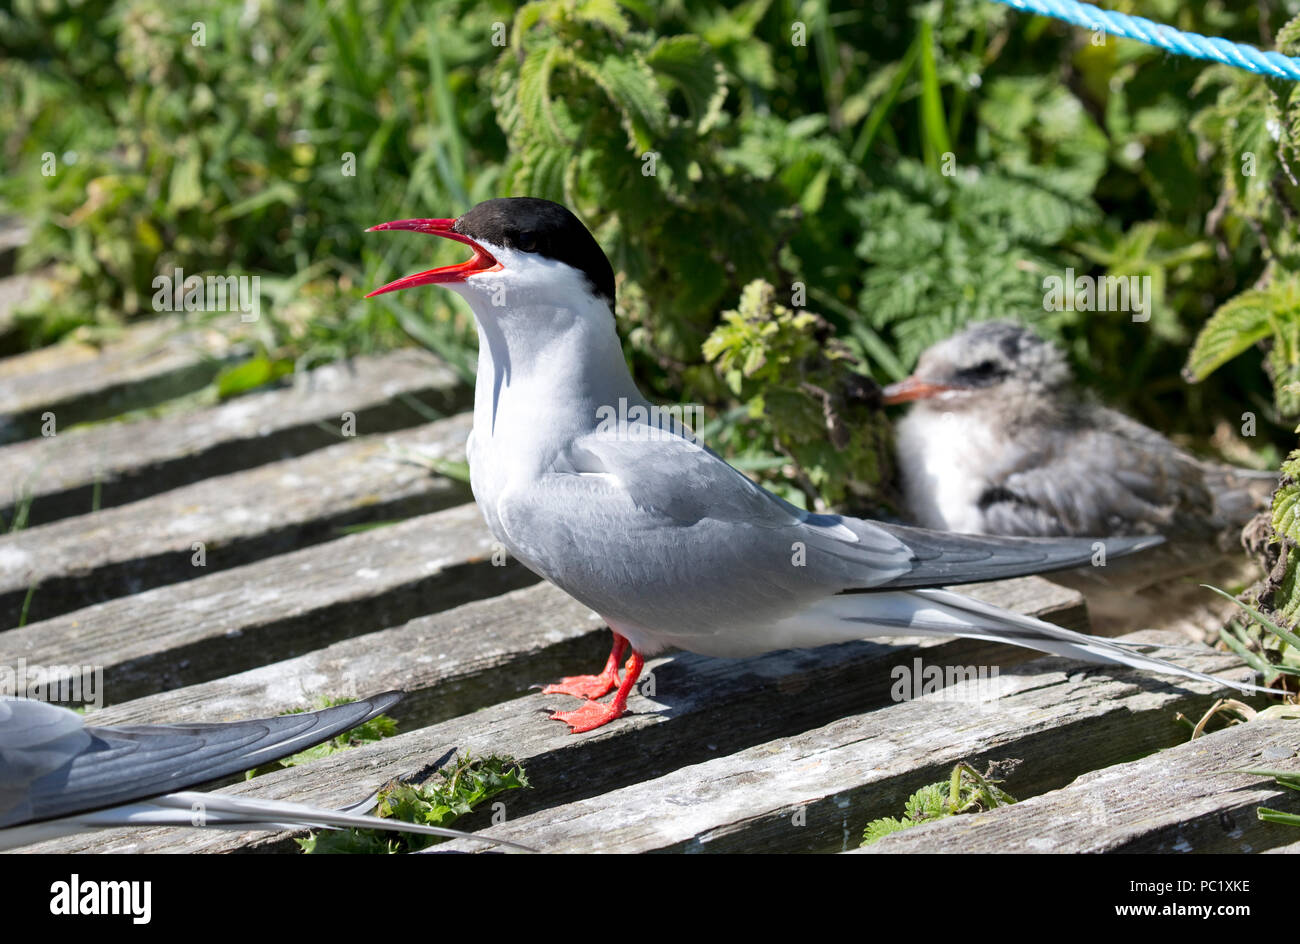 Arctic tern protecting chick - Stock Image